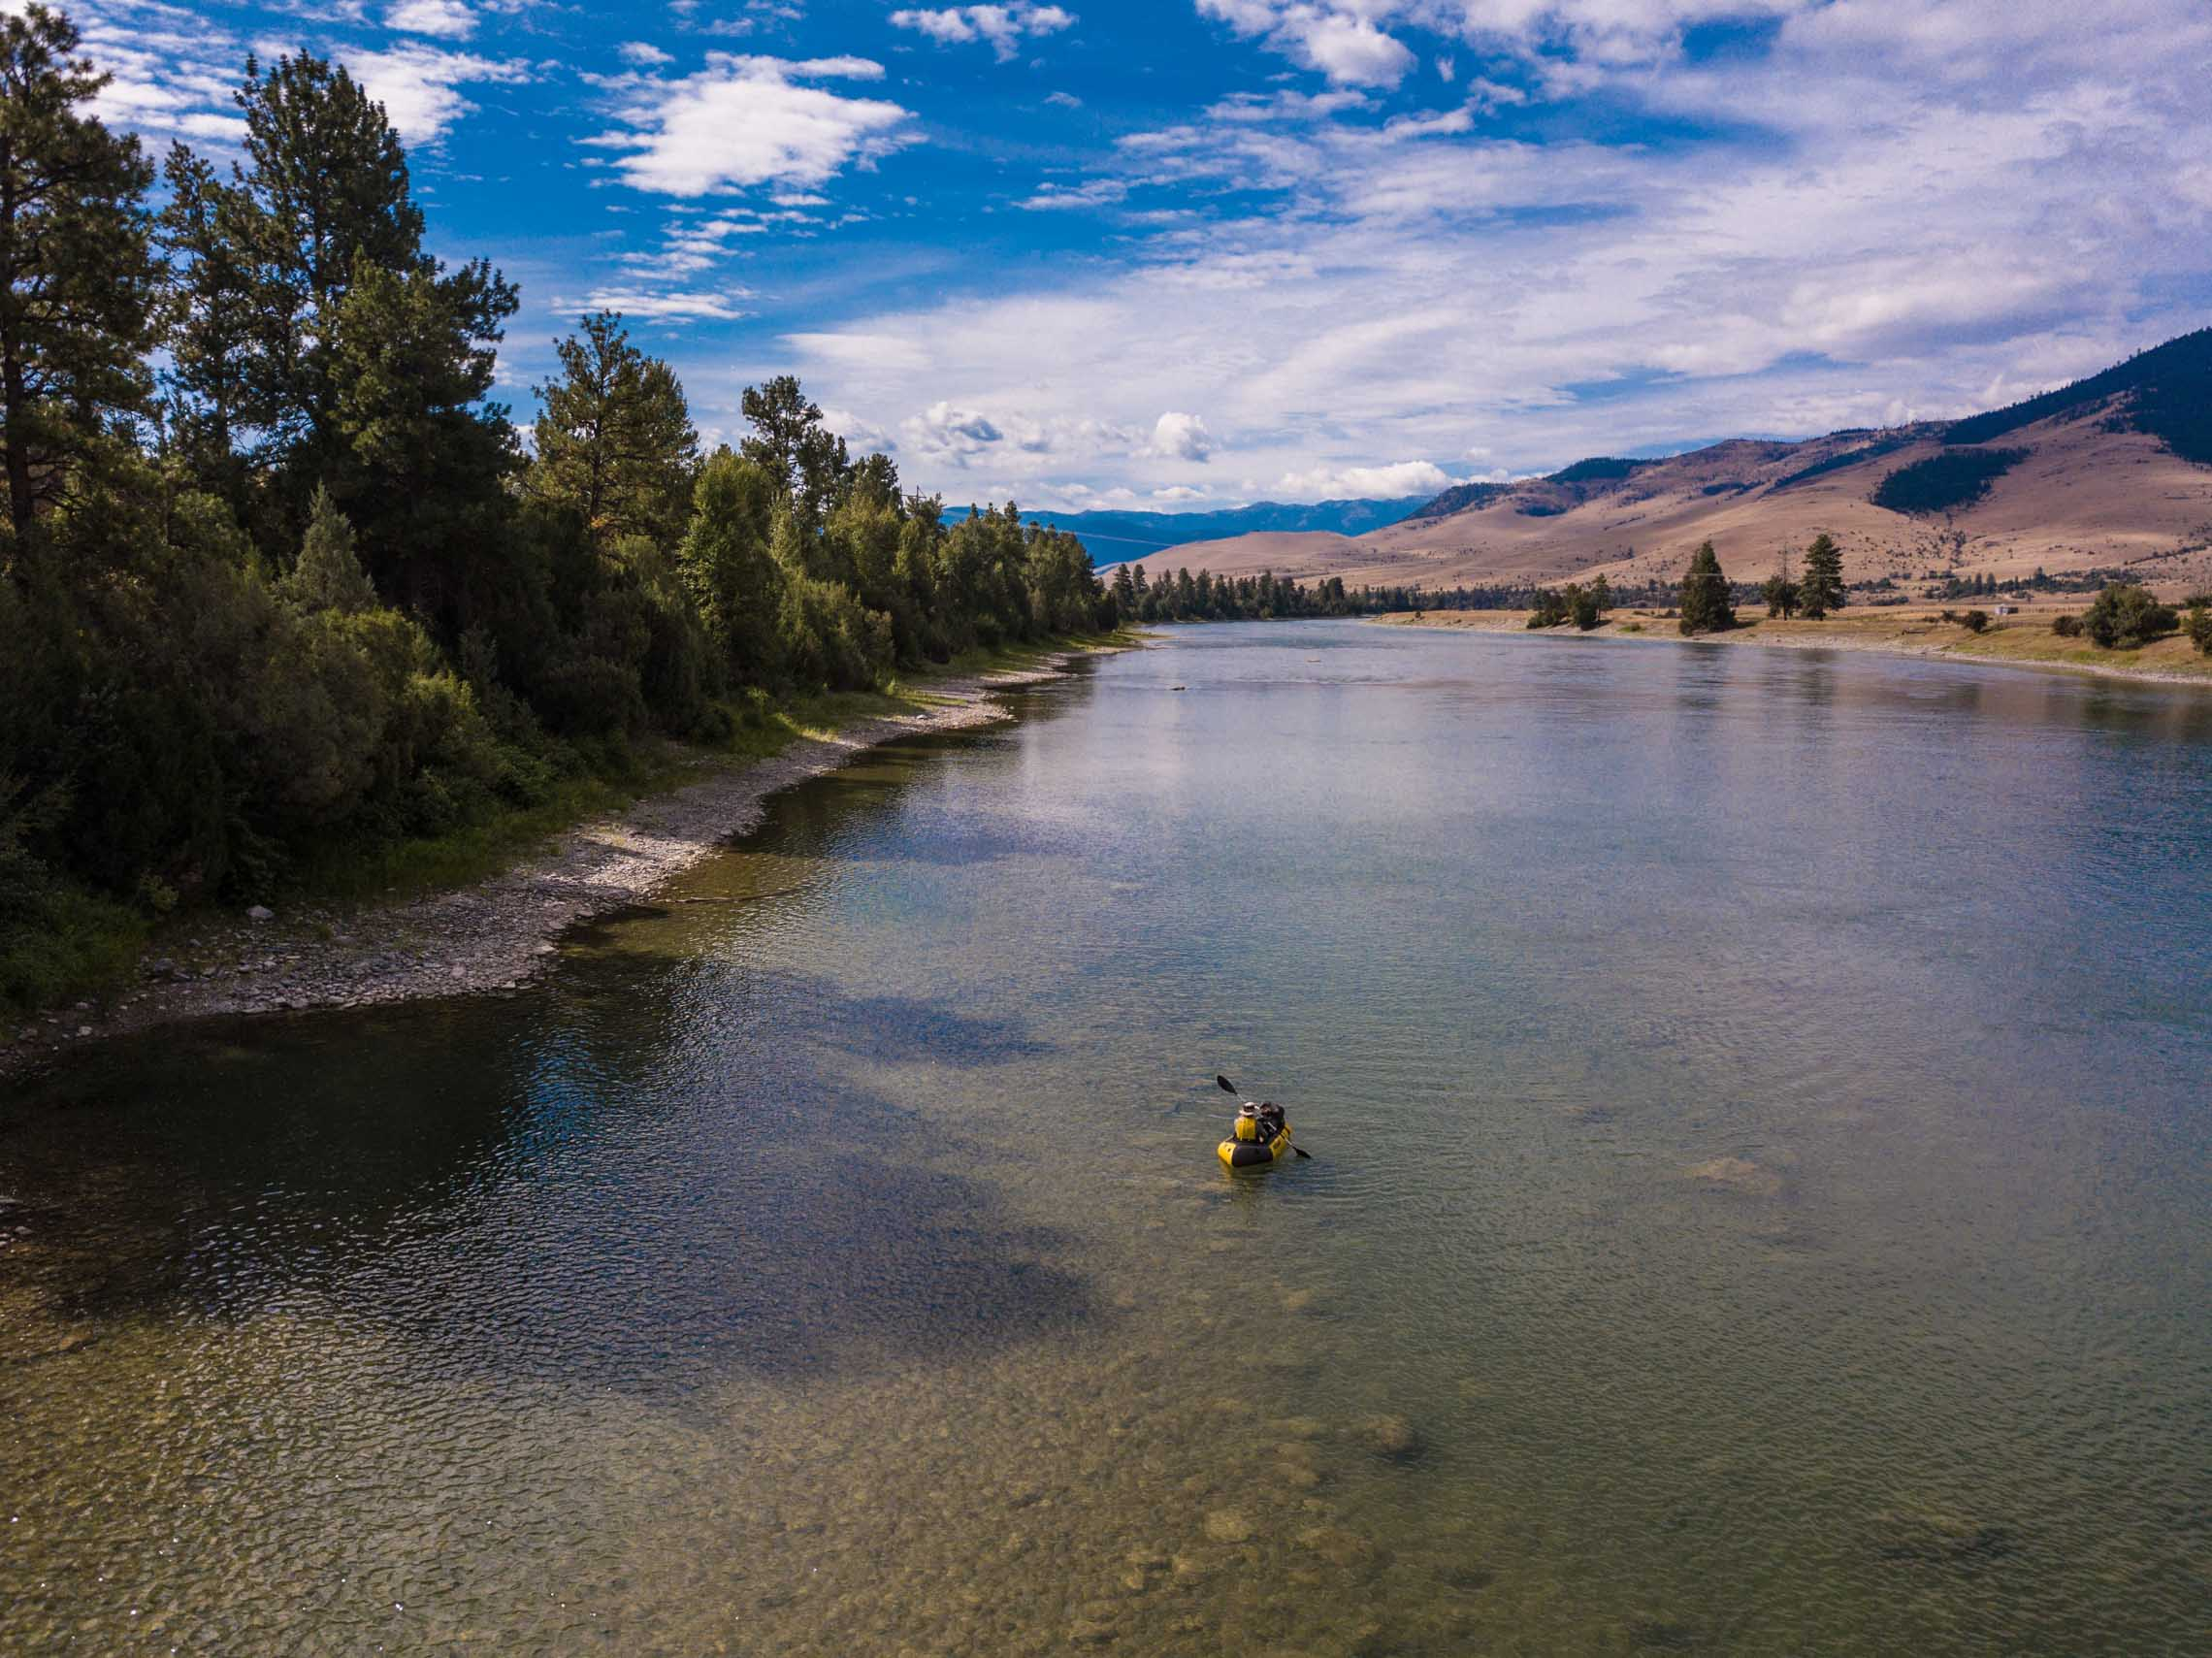 Portaging in a packraft. Things you can do in a Kokopelli packraft